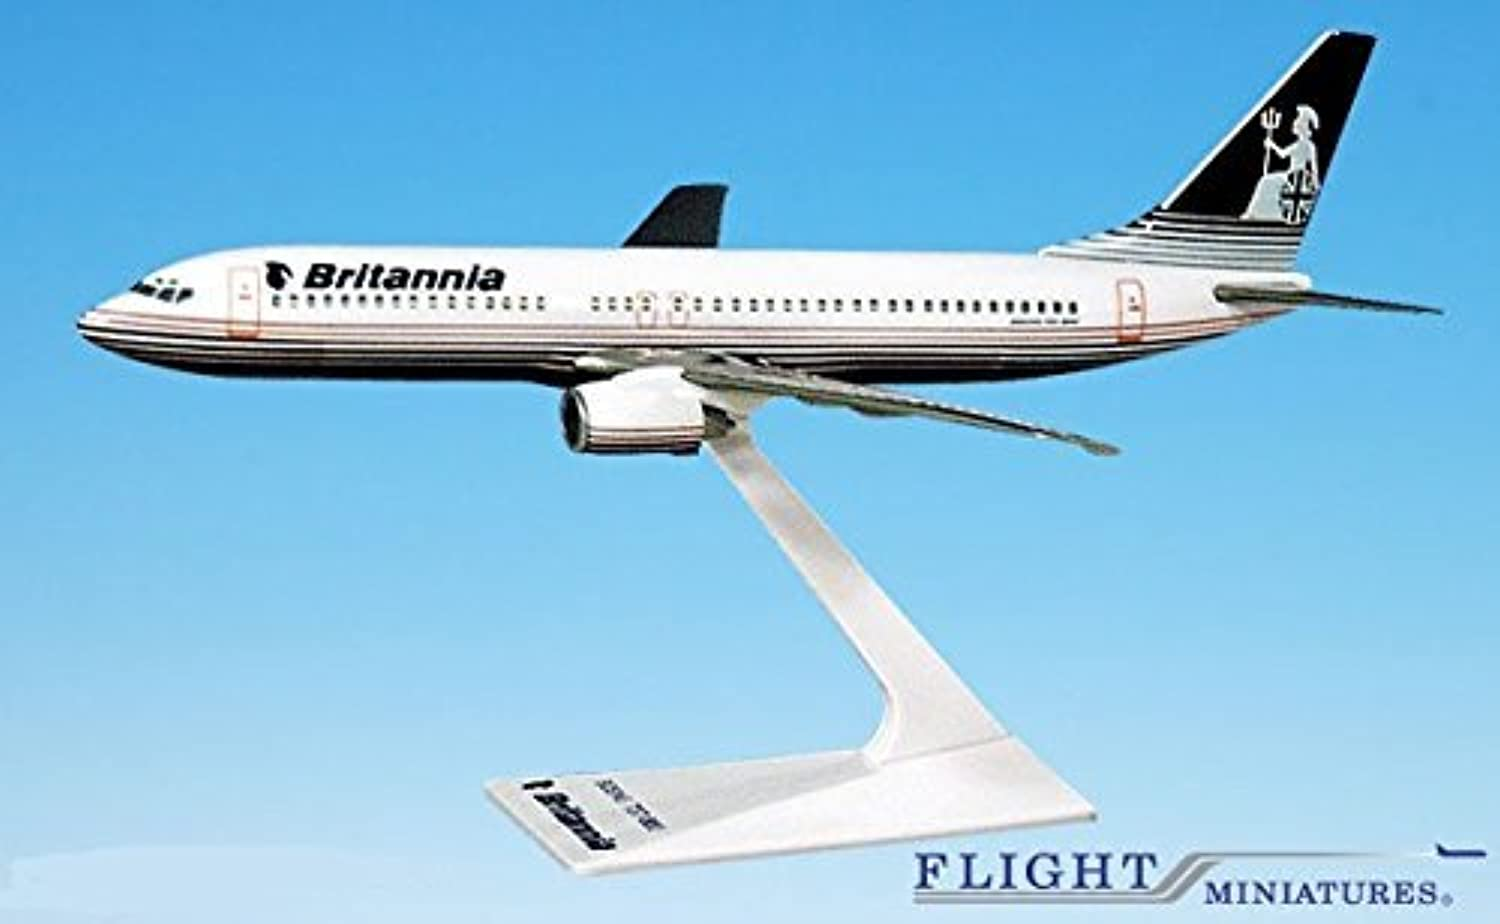 Britannia (OC) 737800 Airplane Miniature Model Plastic SnapFit 1 200 Part  ABO73780H013